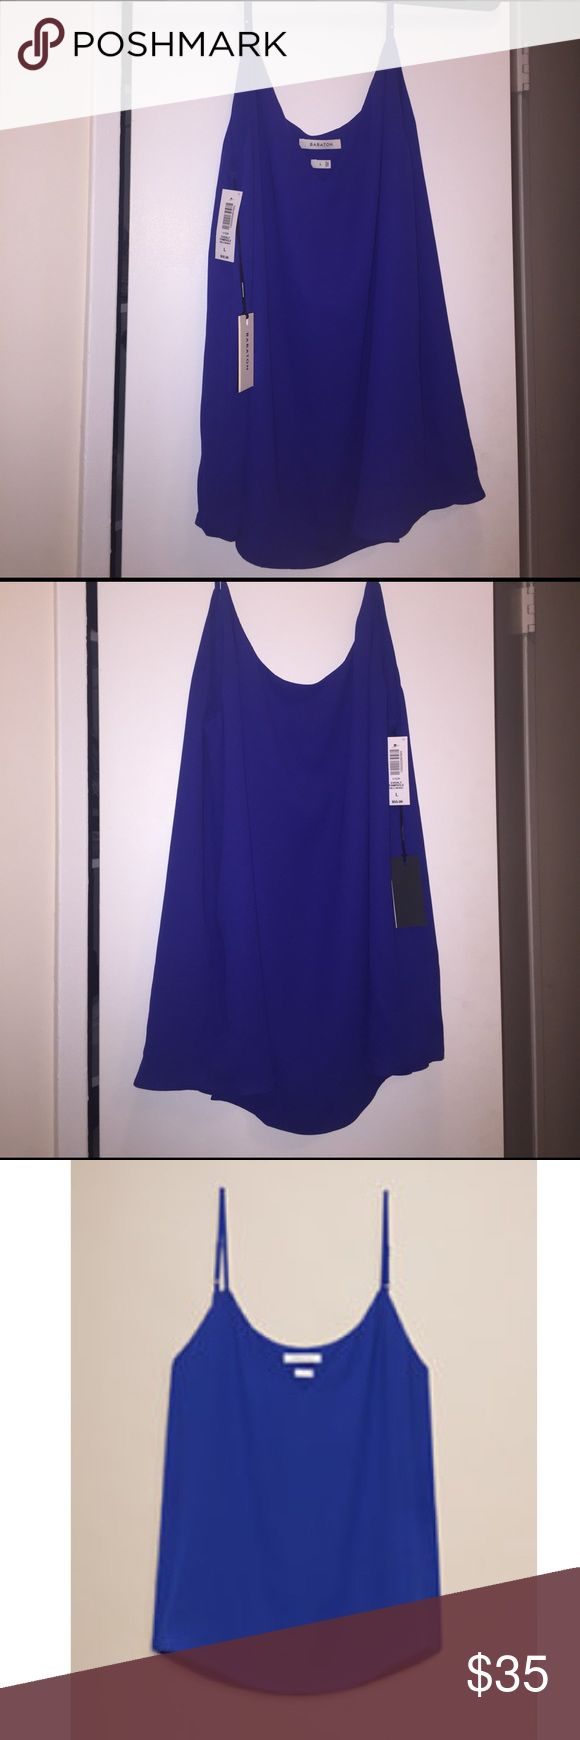 Everly camisole from aritzia Brand new with tags everly camisole in wild indigo from aritzia Aritzia Tops Tank Tops